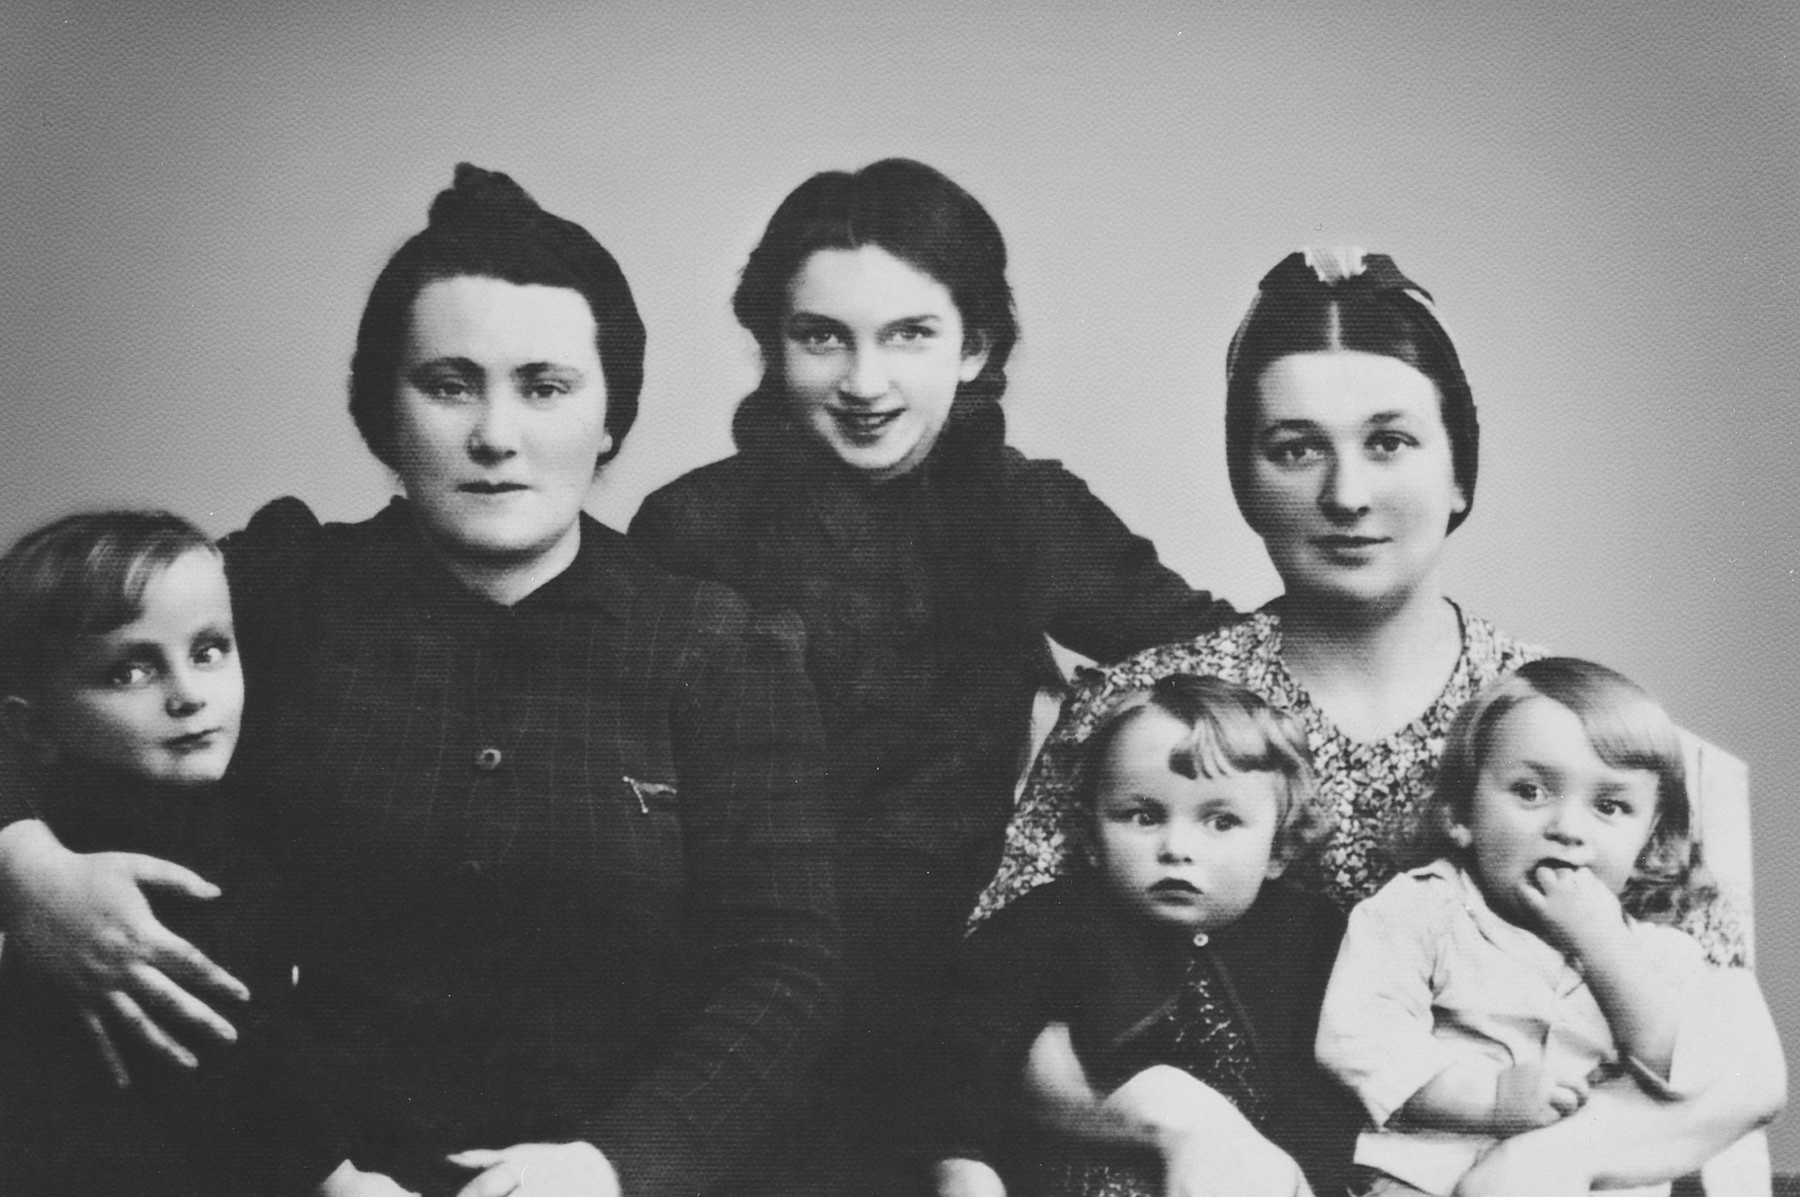 Family portrait of two Jewish sisters and their children in Sosnowiec.  On left are Aunt Rose and her daughter.  Genia is in the center and then Esther Wajntraub Paluch holding Ida and Adam.